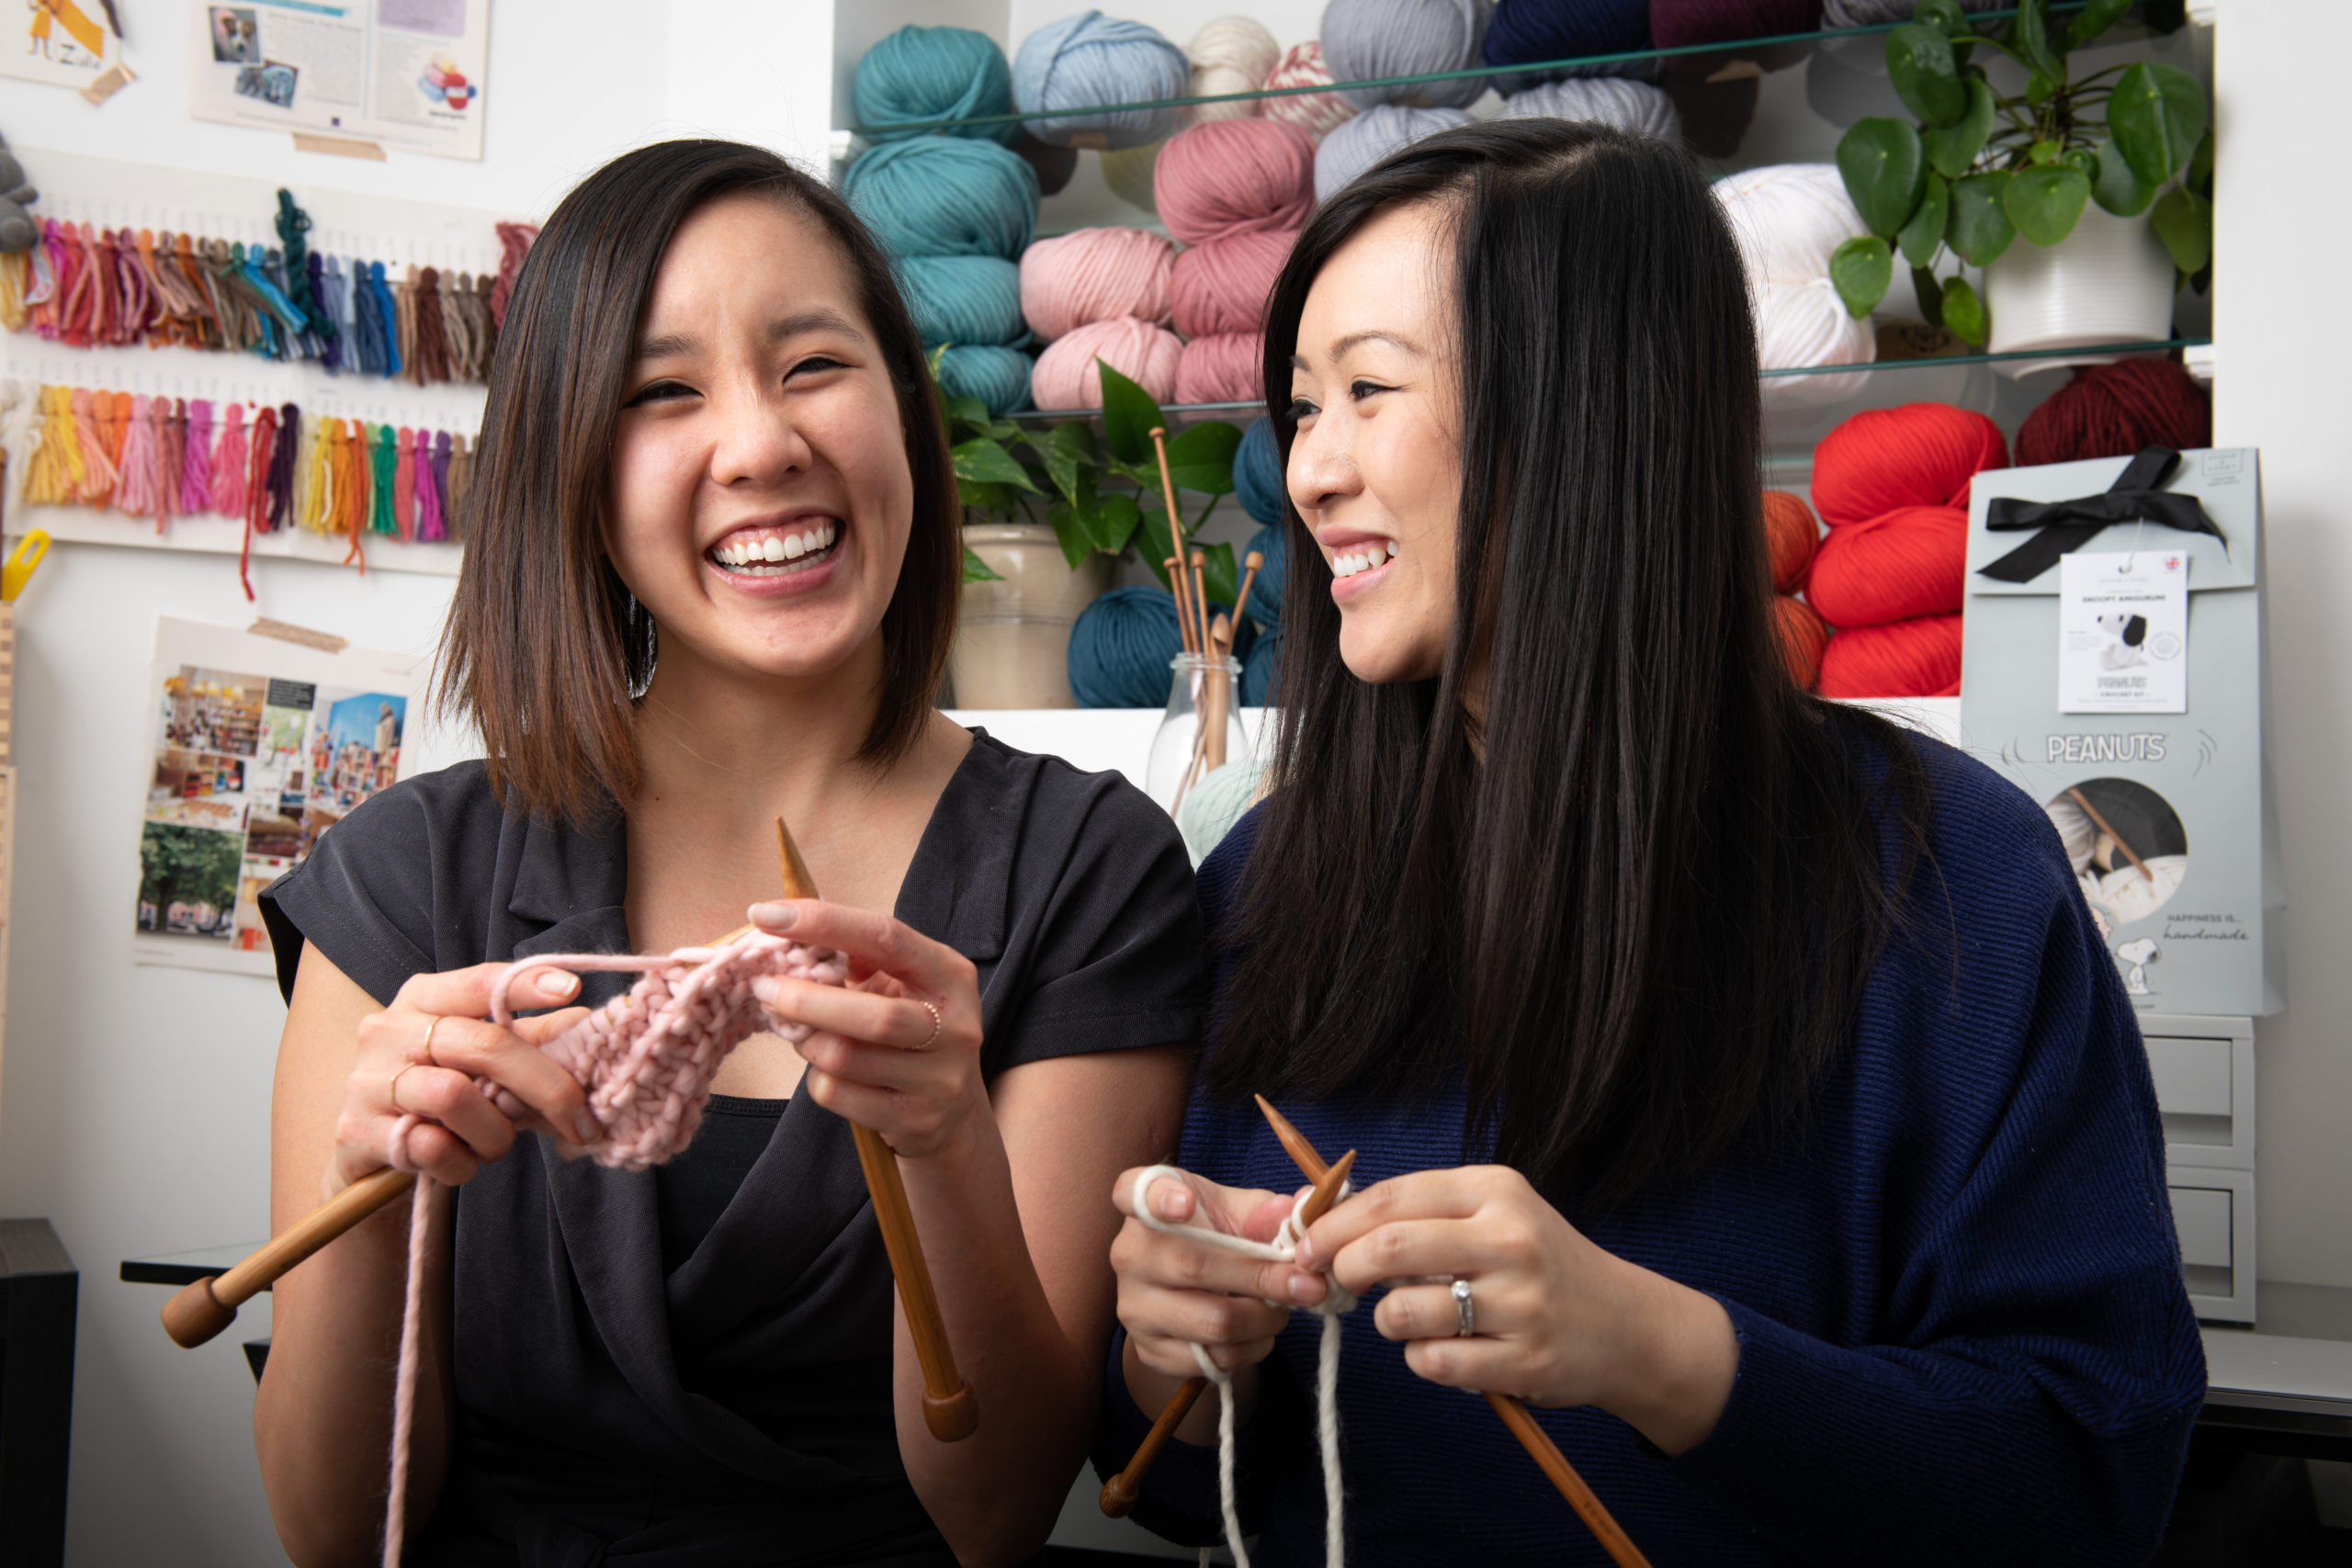 Coronavirus small business diary – Stitch & Story CEO Jennifer Lam